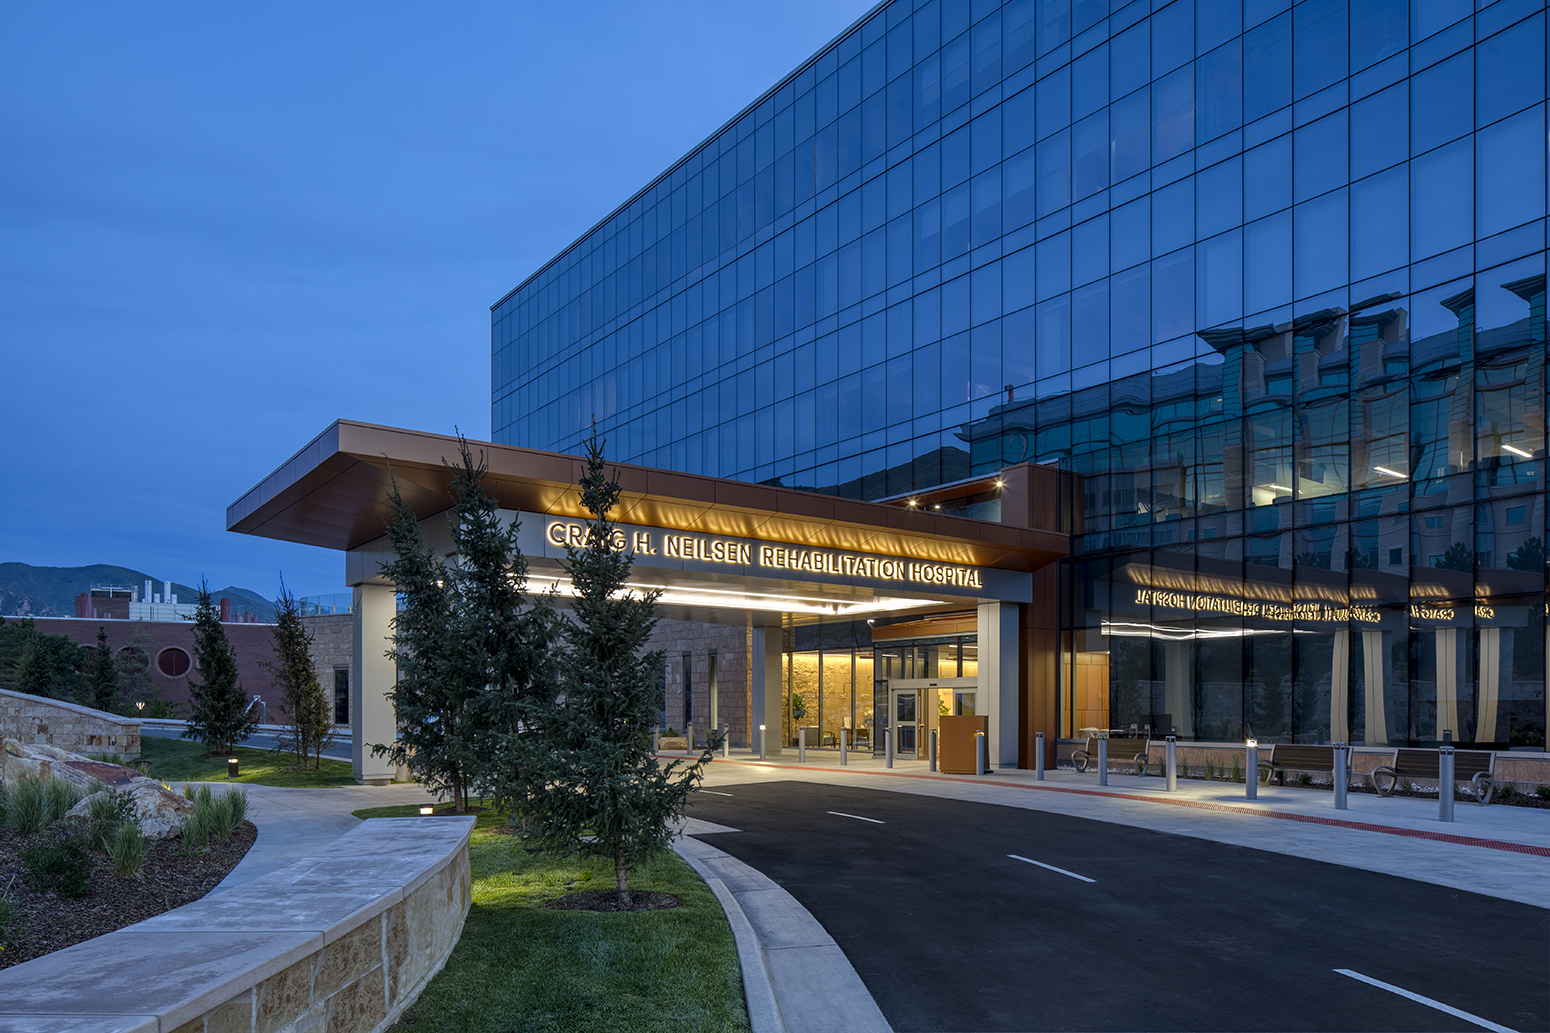 Craig H. Nielsen Rehabilitation Hospital for FFKR & HDR Inc.Architectural Photography by: Paul Richer / RICHER IMAGES